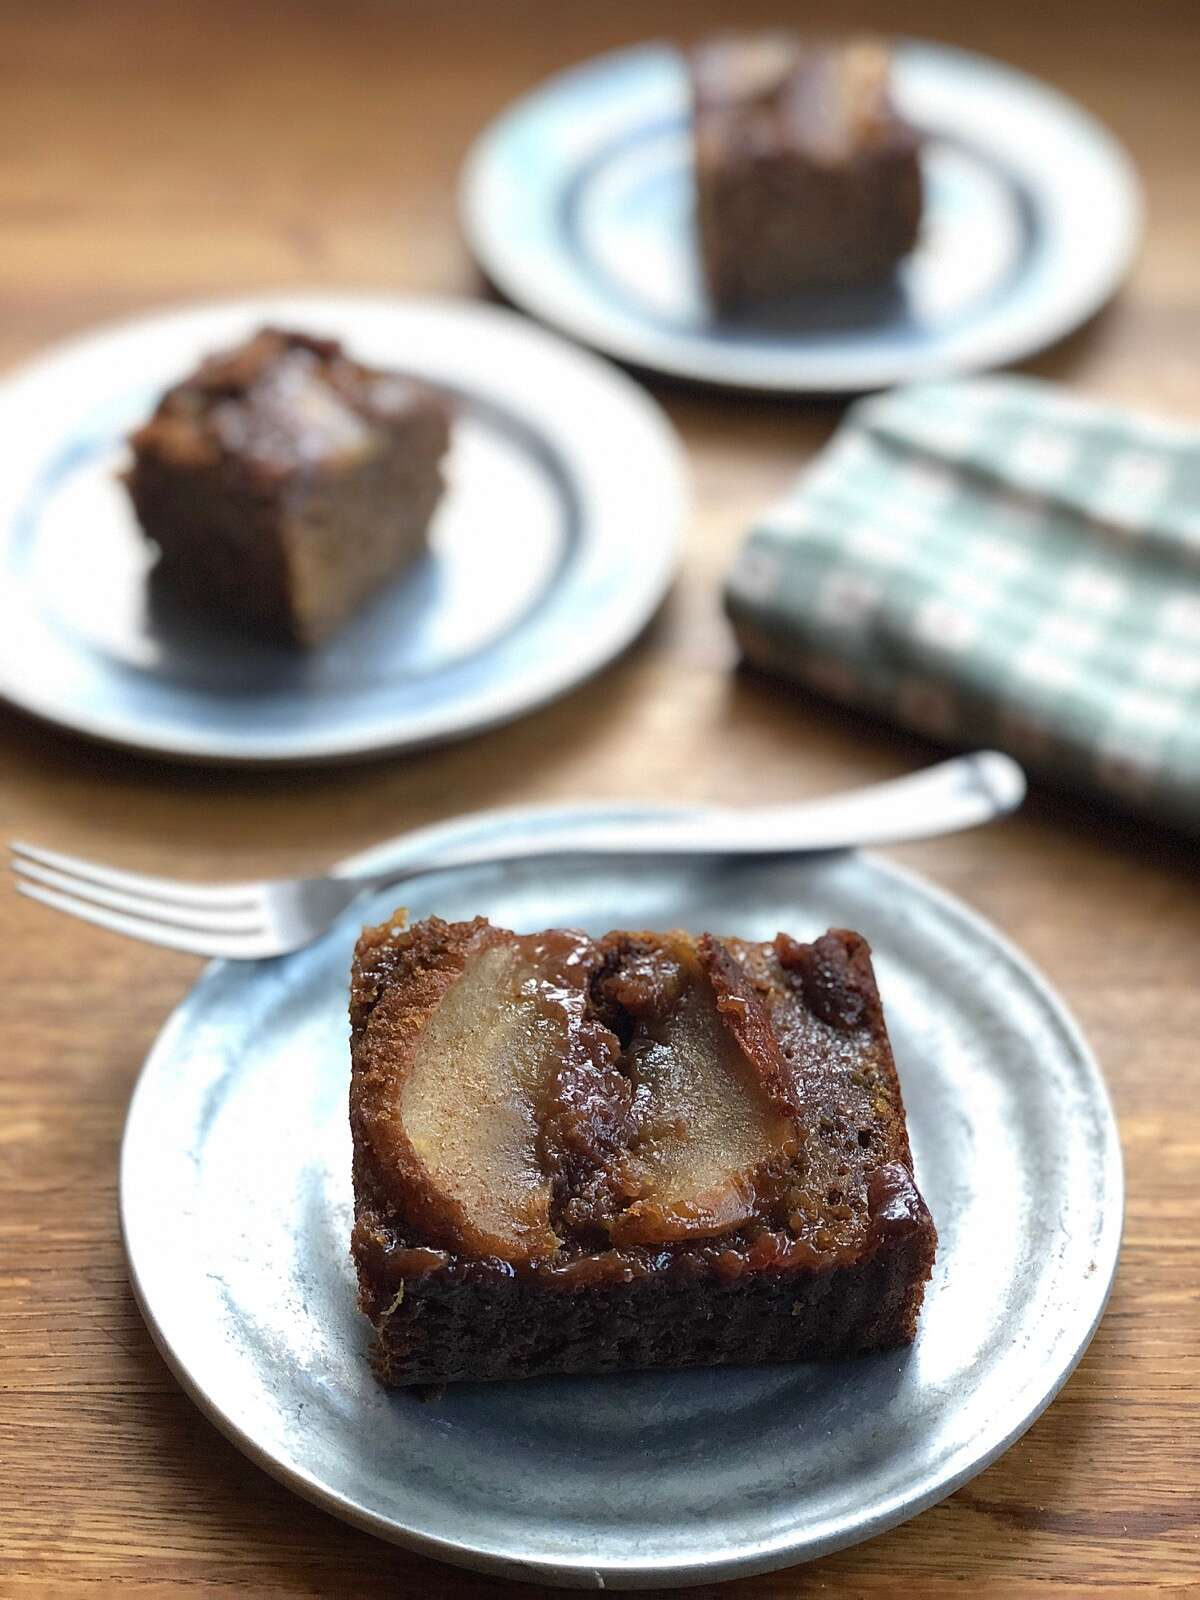 Square of apple upside-down gingerbread cake on a plate